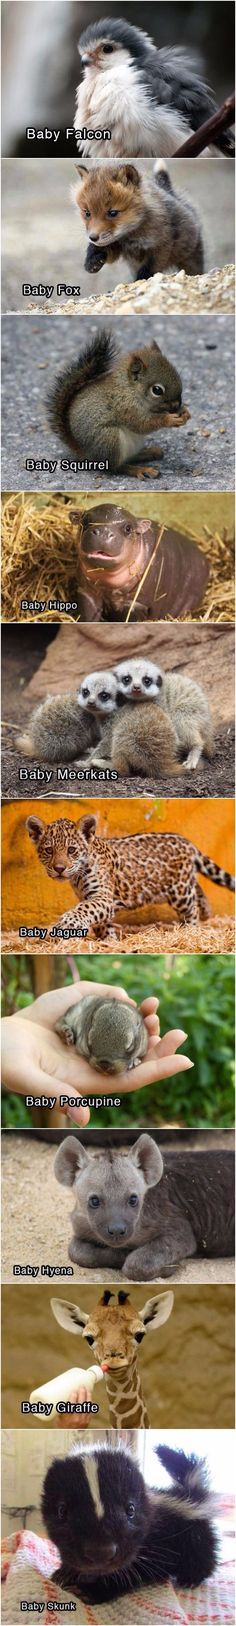 Adorable Baby Animals Funny Baby Animals, Cutest Baby Animals, Baby Wild Animals, Baby Animals Pictures, Cute Little Animals, Cute Animal Pictures, Animals And Pets, Strange Animals, Funny Pictures